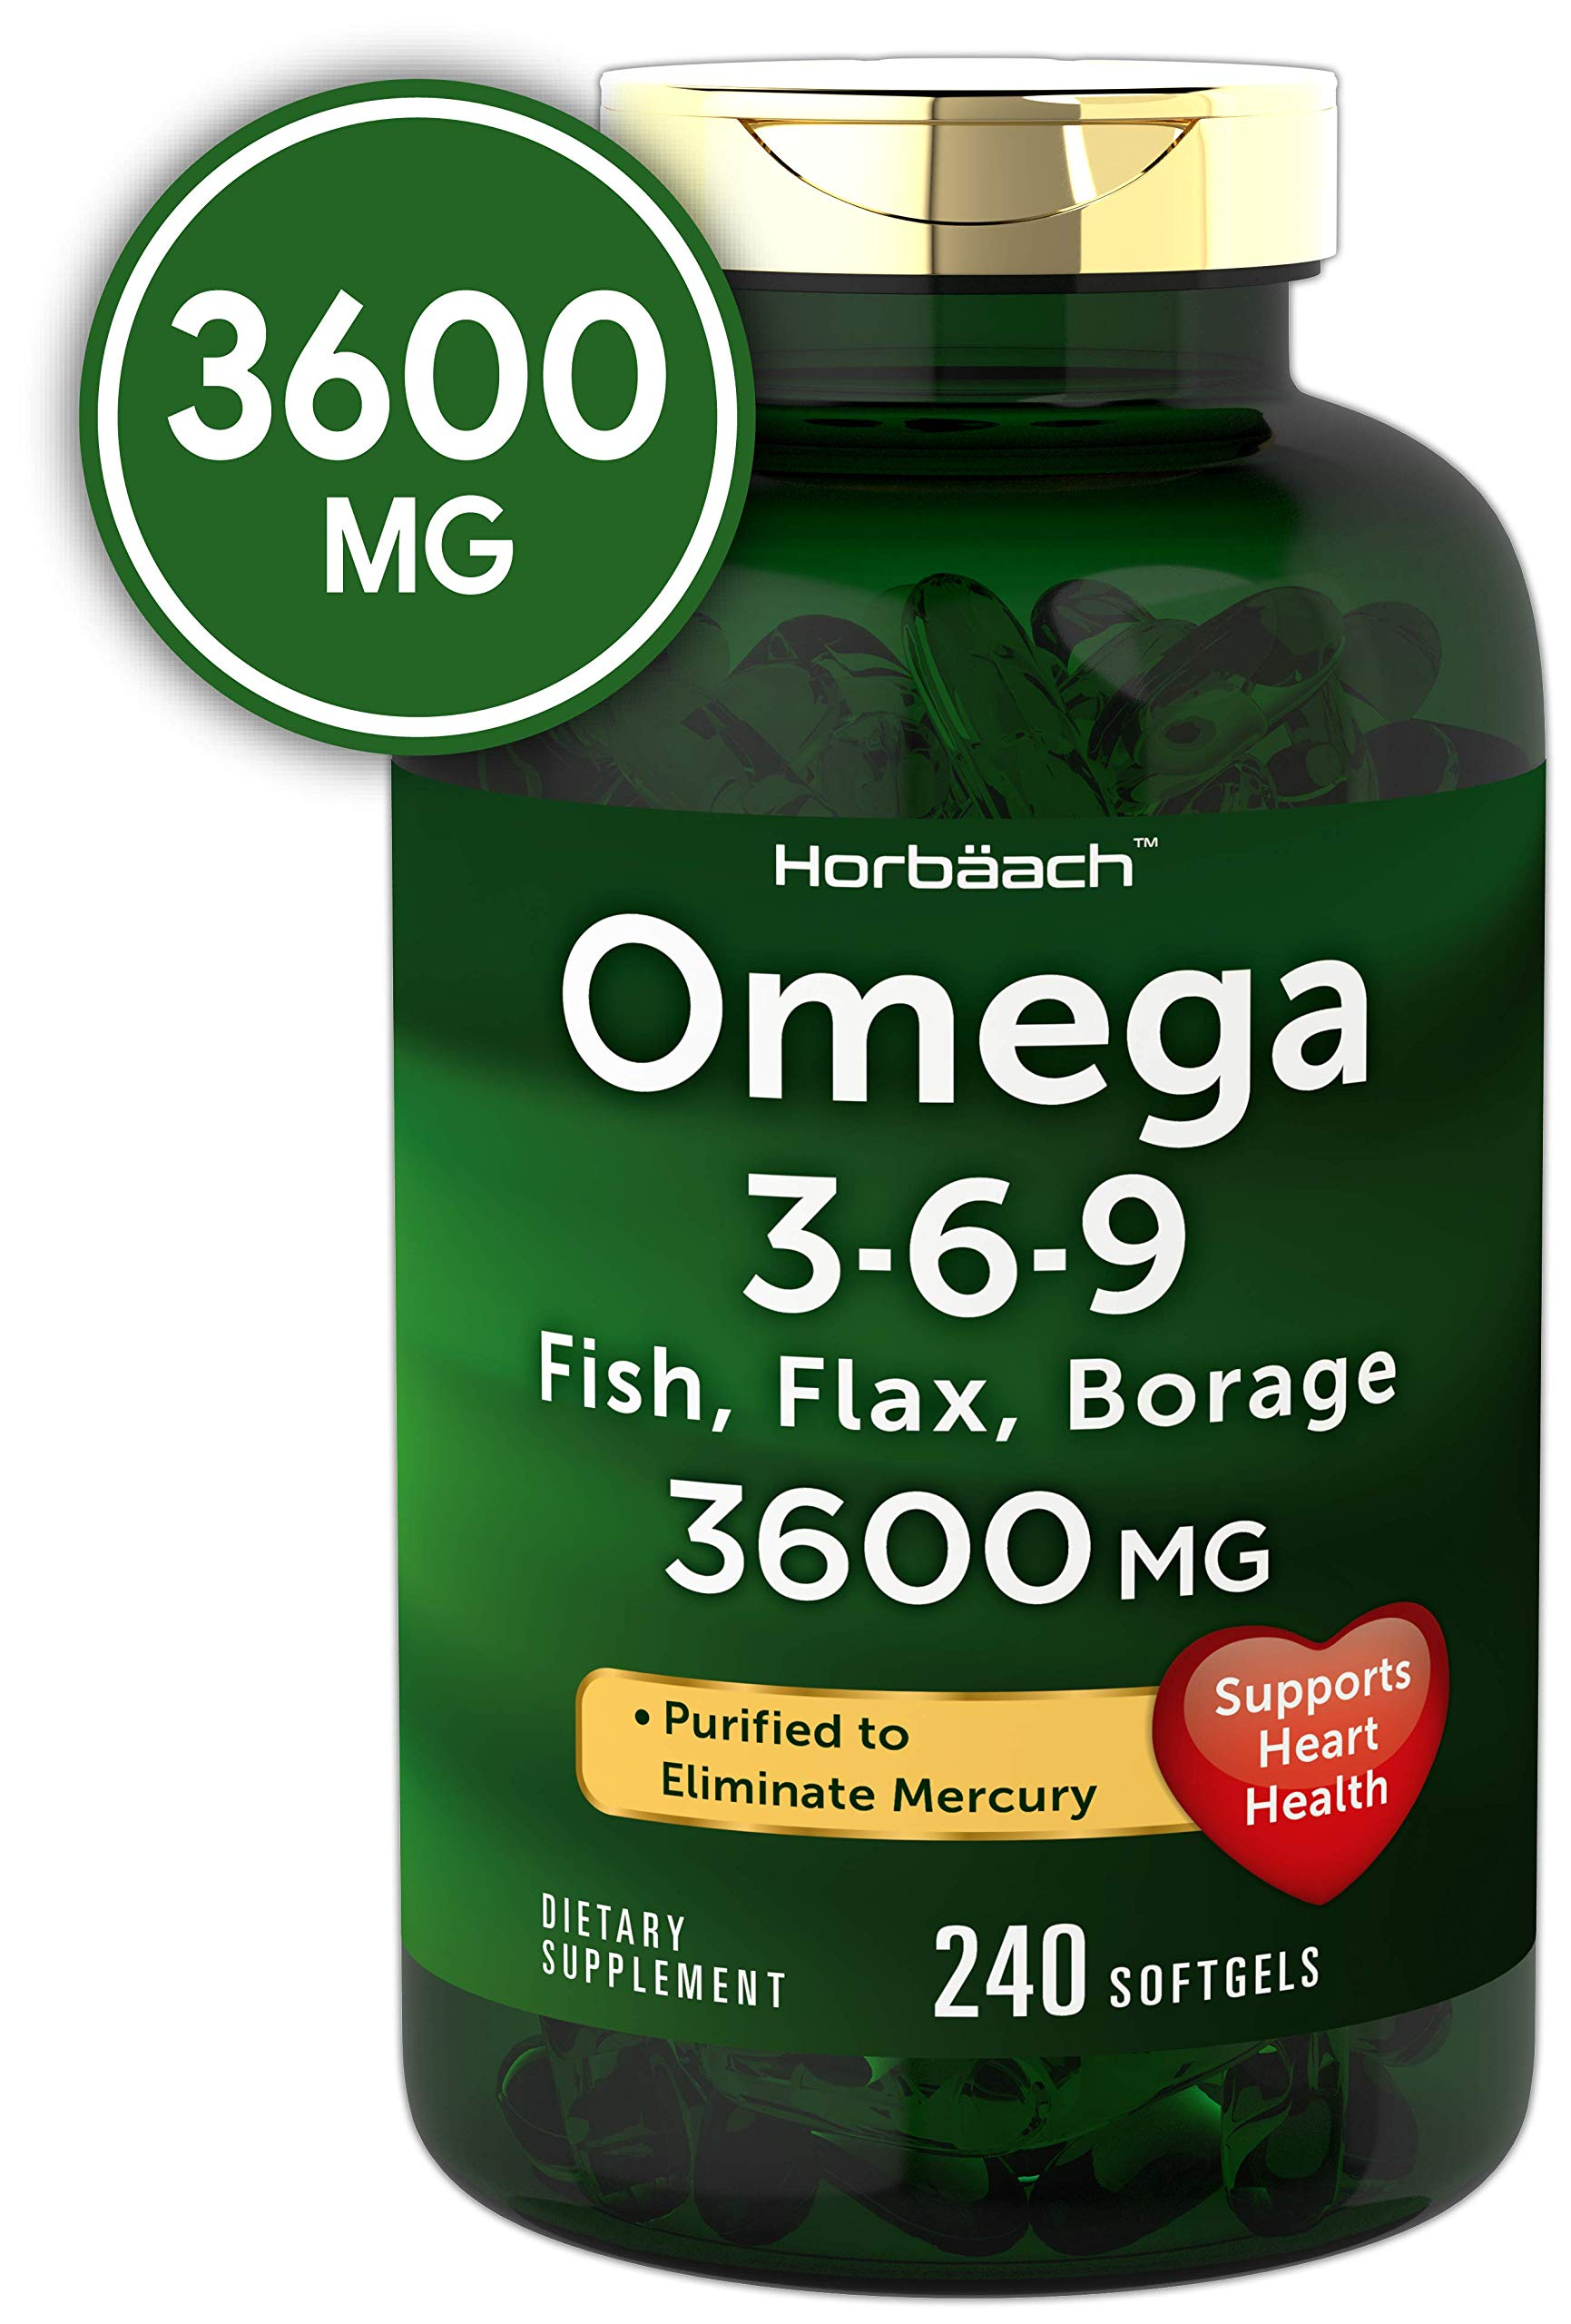 Triple Omega 3-6-9 3600 mg 240 Softgels   from Fish, Flaxseed, Borage Oils   Non-GMO & Gluten Free   by Horbaach